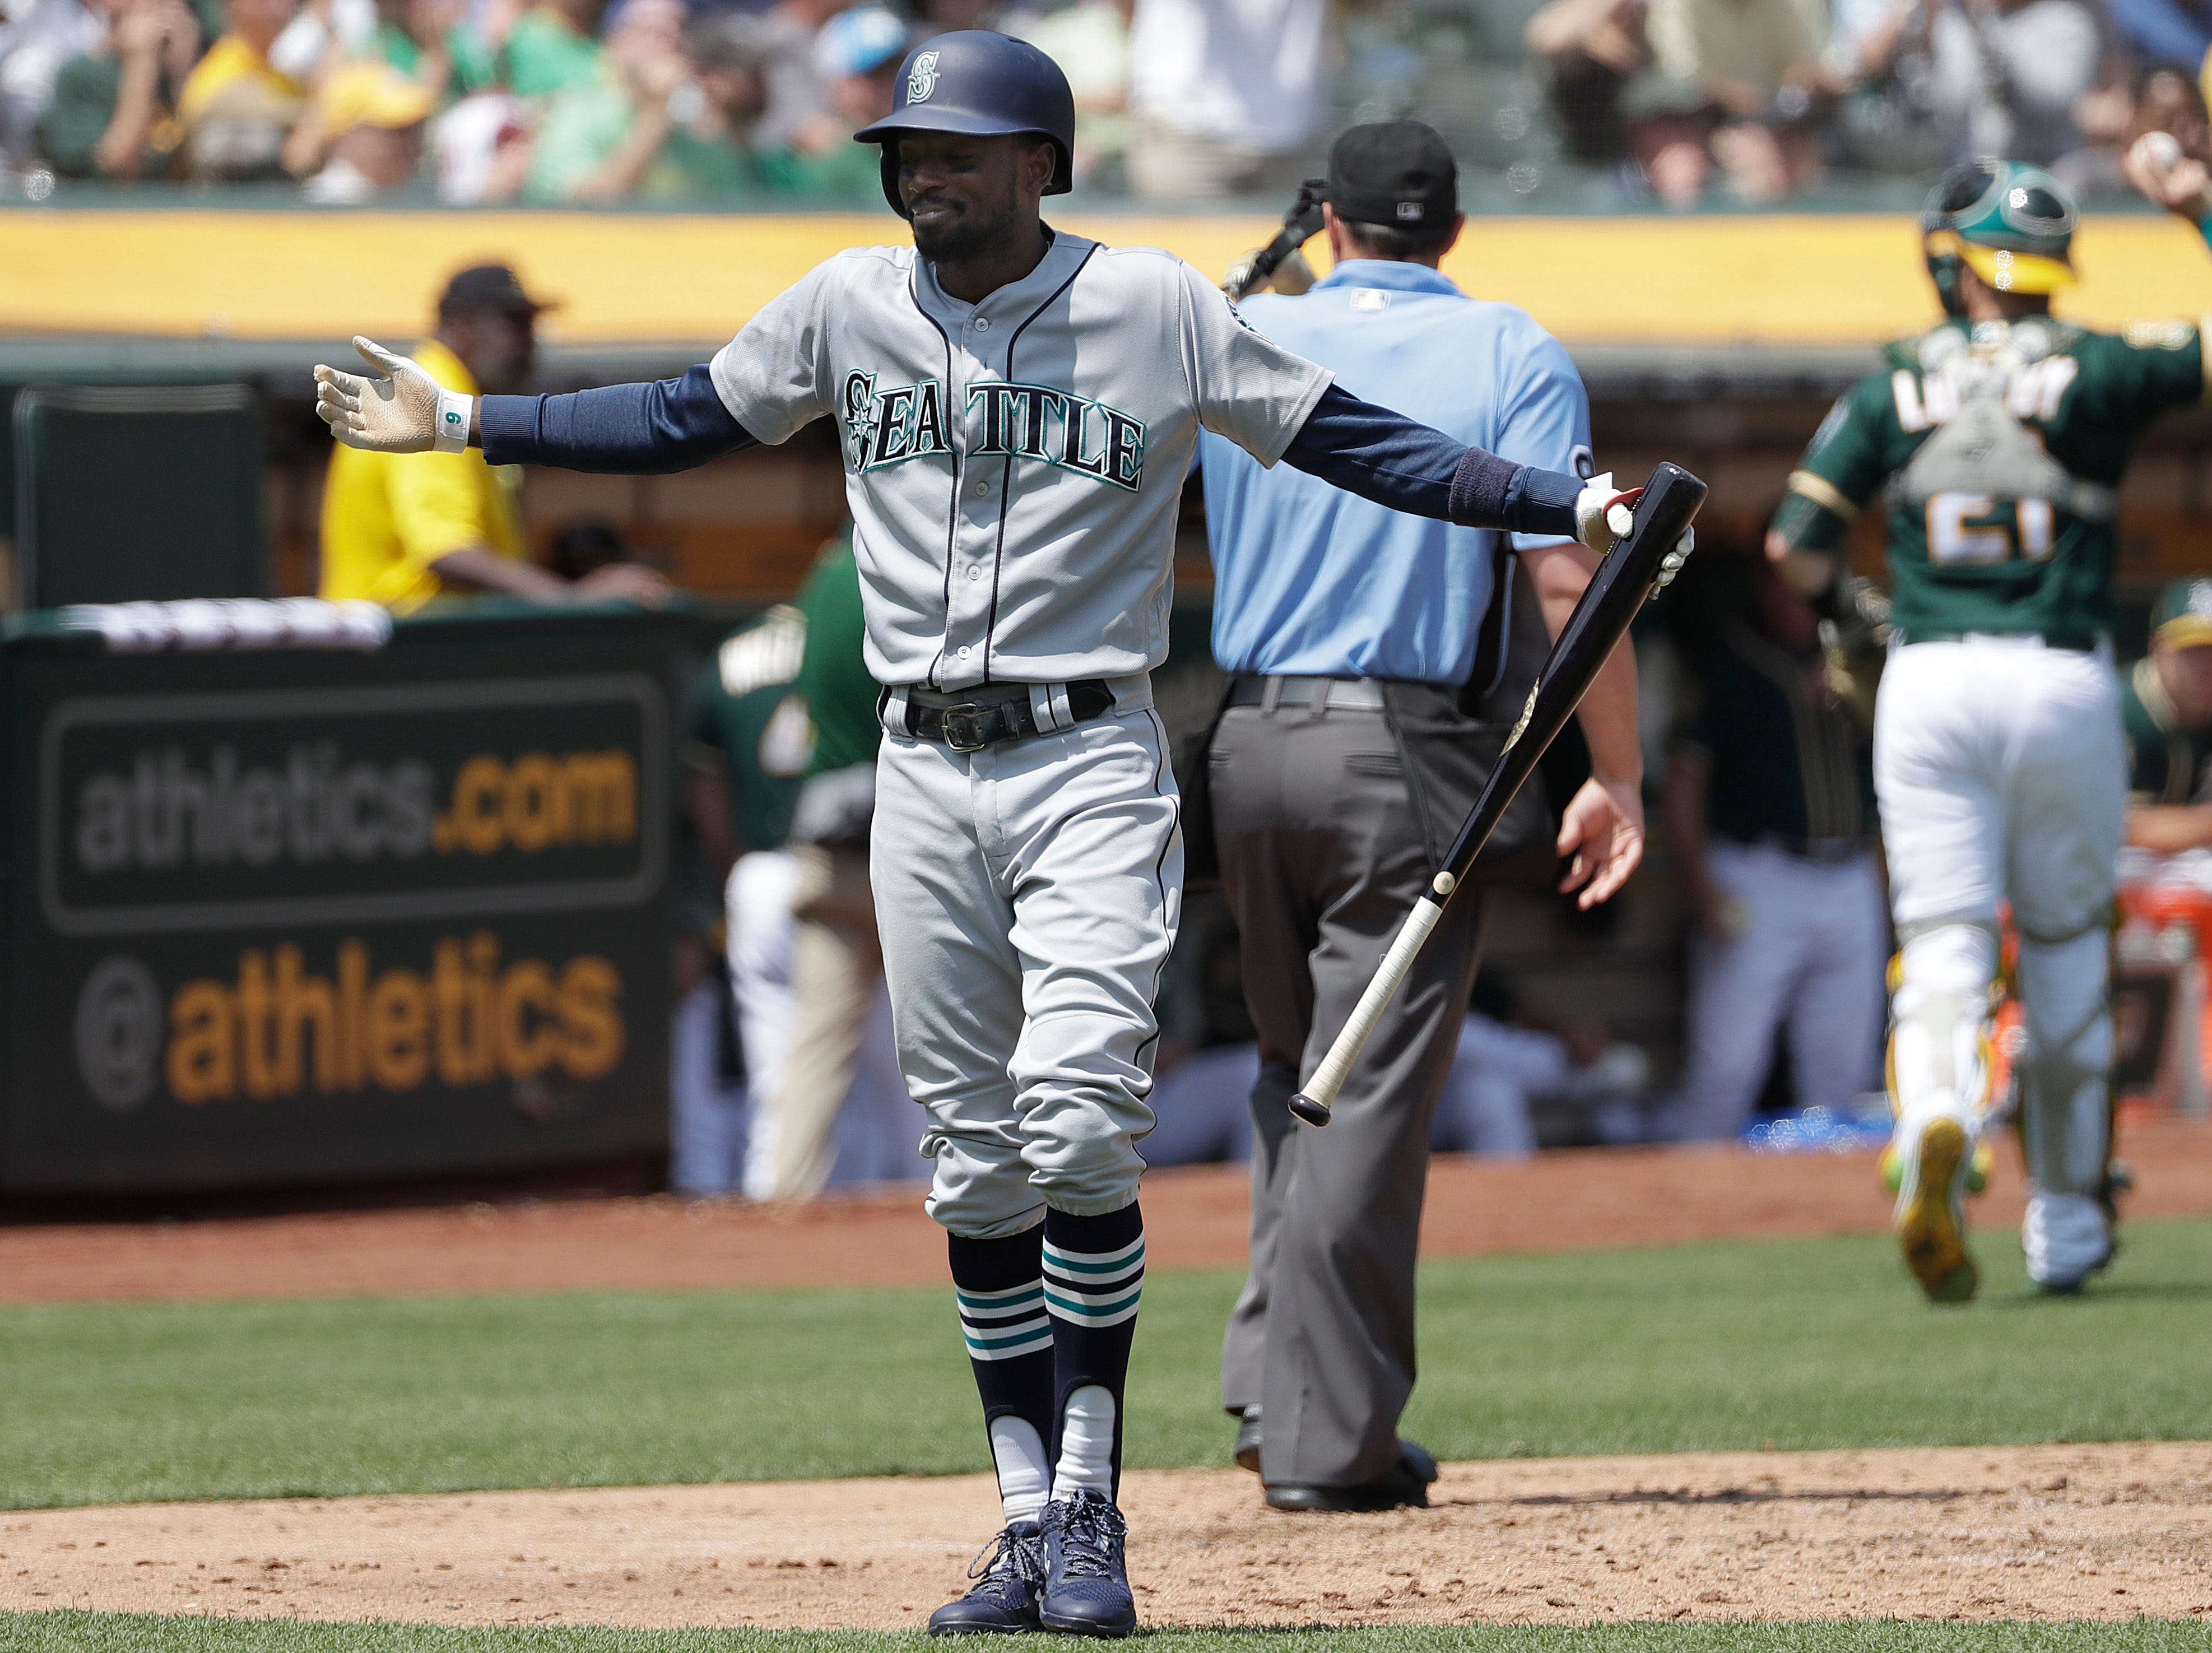 It's been a strange season for the Seattle Mariners and Dee Gordon, who now hits ninth in the order.